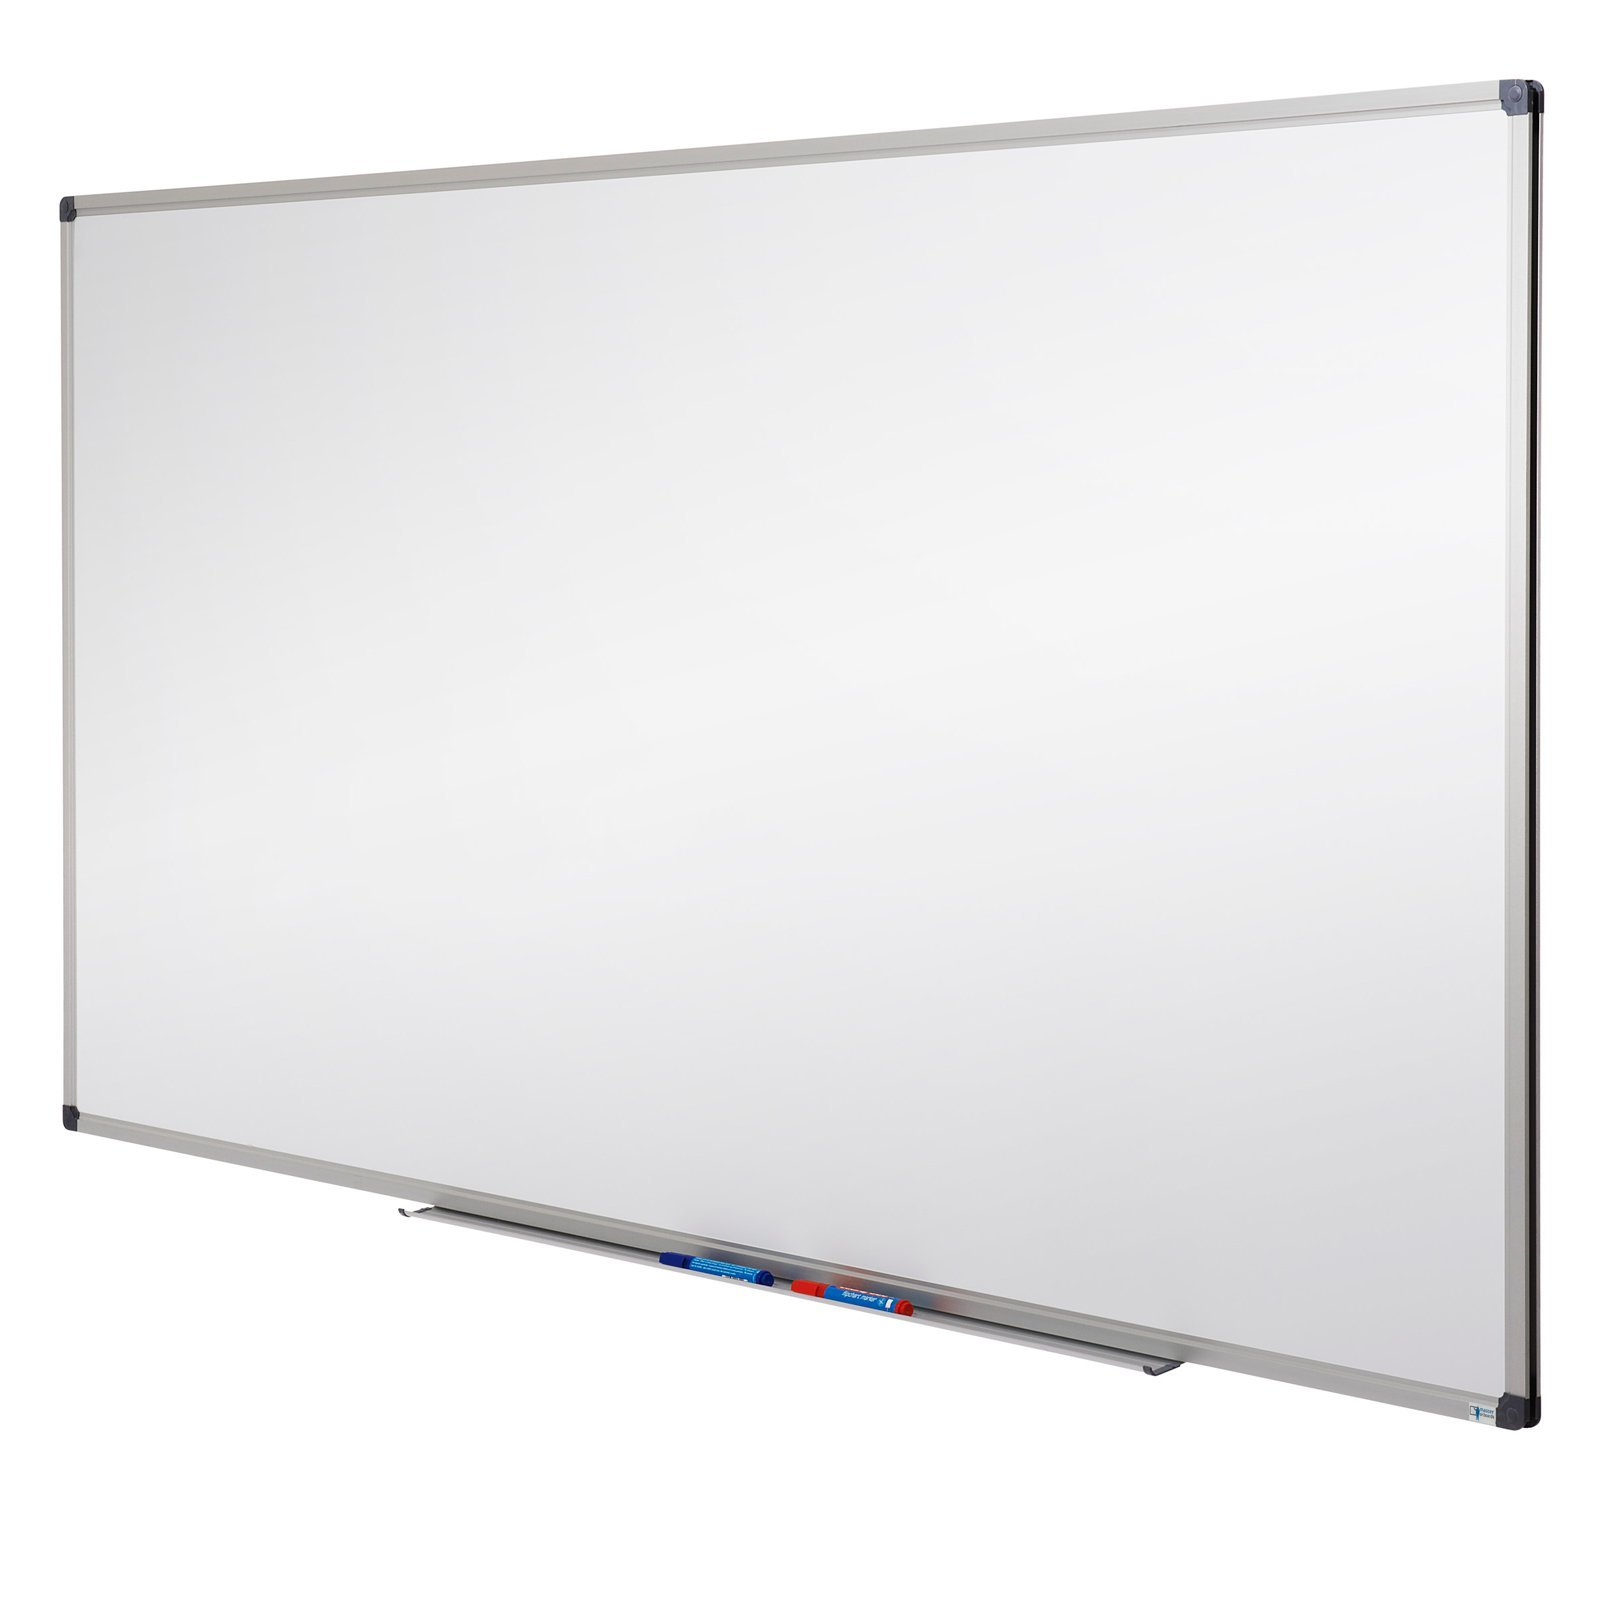 Master of Boards White Board | Magnet Dry Erase Board | Magnetic Message and Memo Planner for Commercial or Private Use | 4 Sizes | 36'' x 24'' by Master of Boards (Image #2)